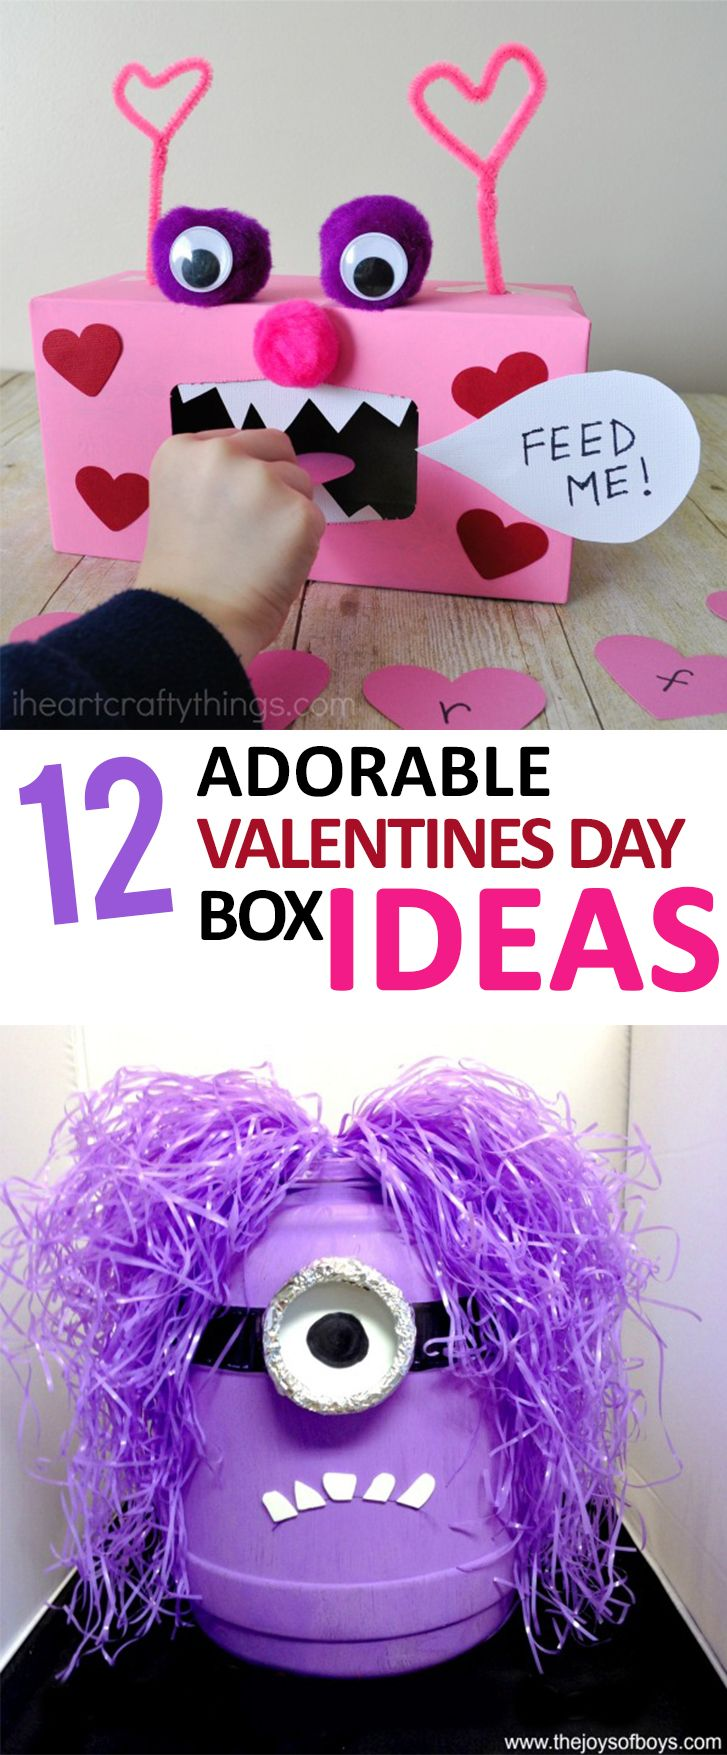 Valentines Day Box Ideas, Valentines Day Boxes, Easy Valentines Day Boxes, Valentines Day Decor, Kid Boxes for Valentines Day, Valentines Day Mailboxes, Popular Pin